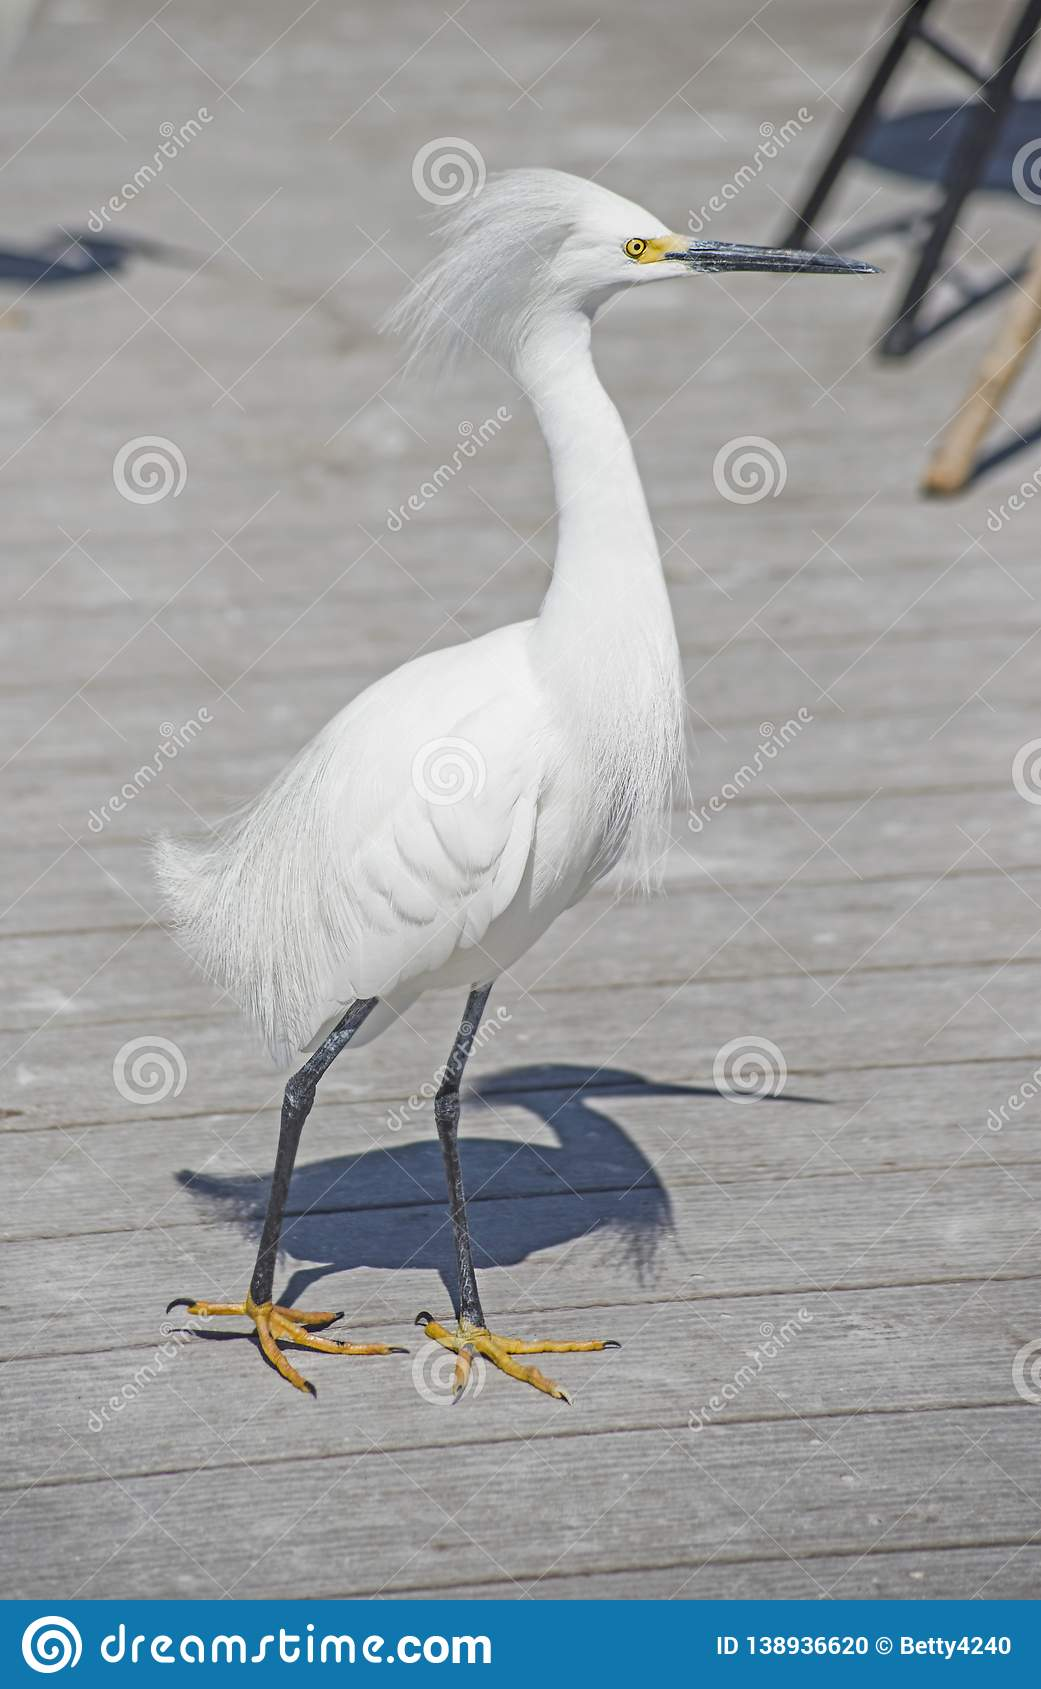 A Snowy Egret walks the piers looking for fish scraps.